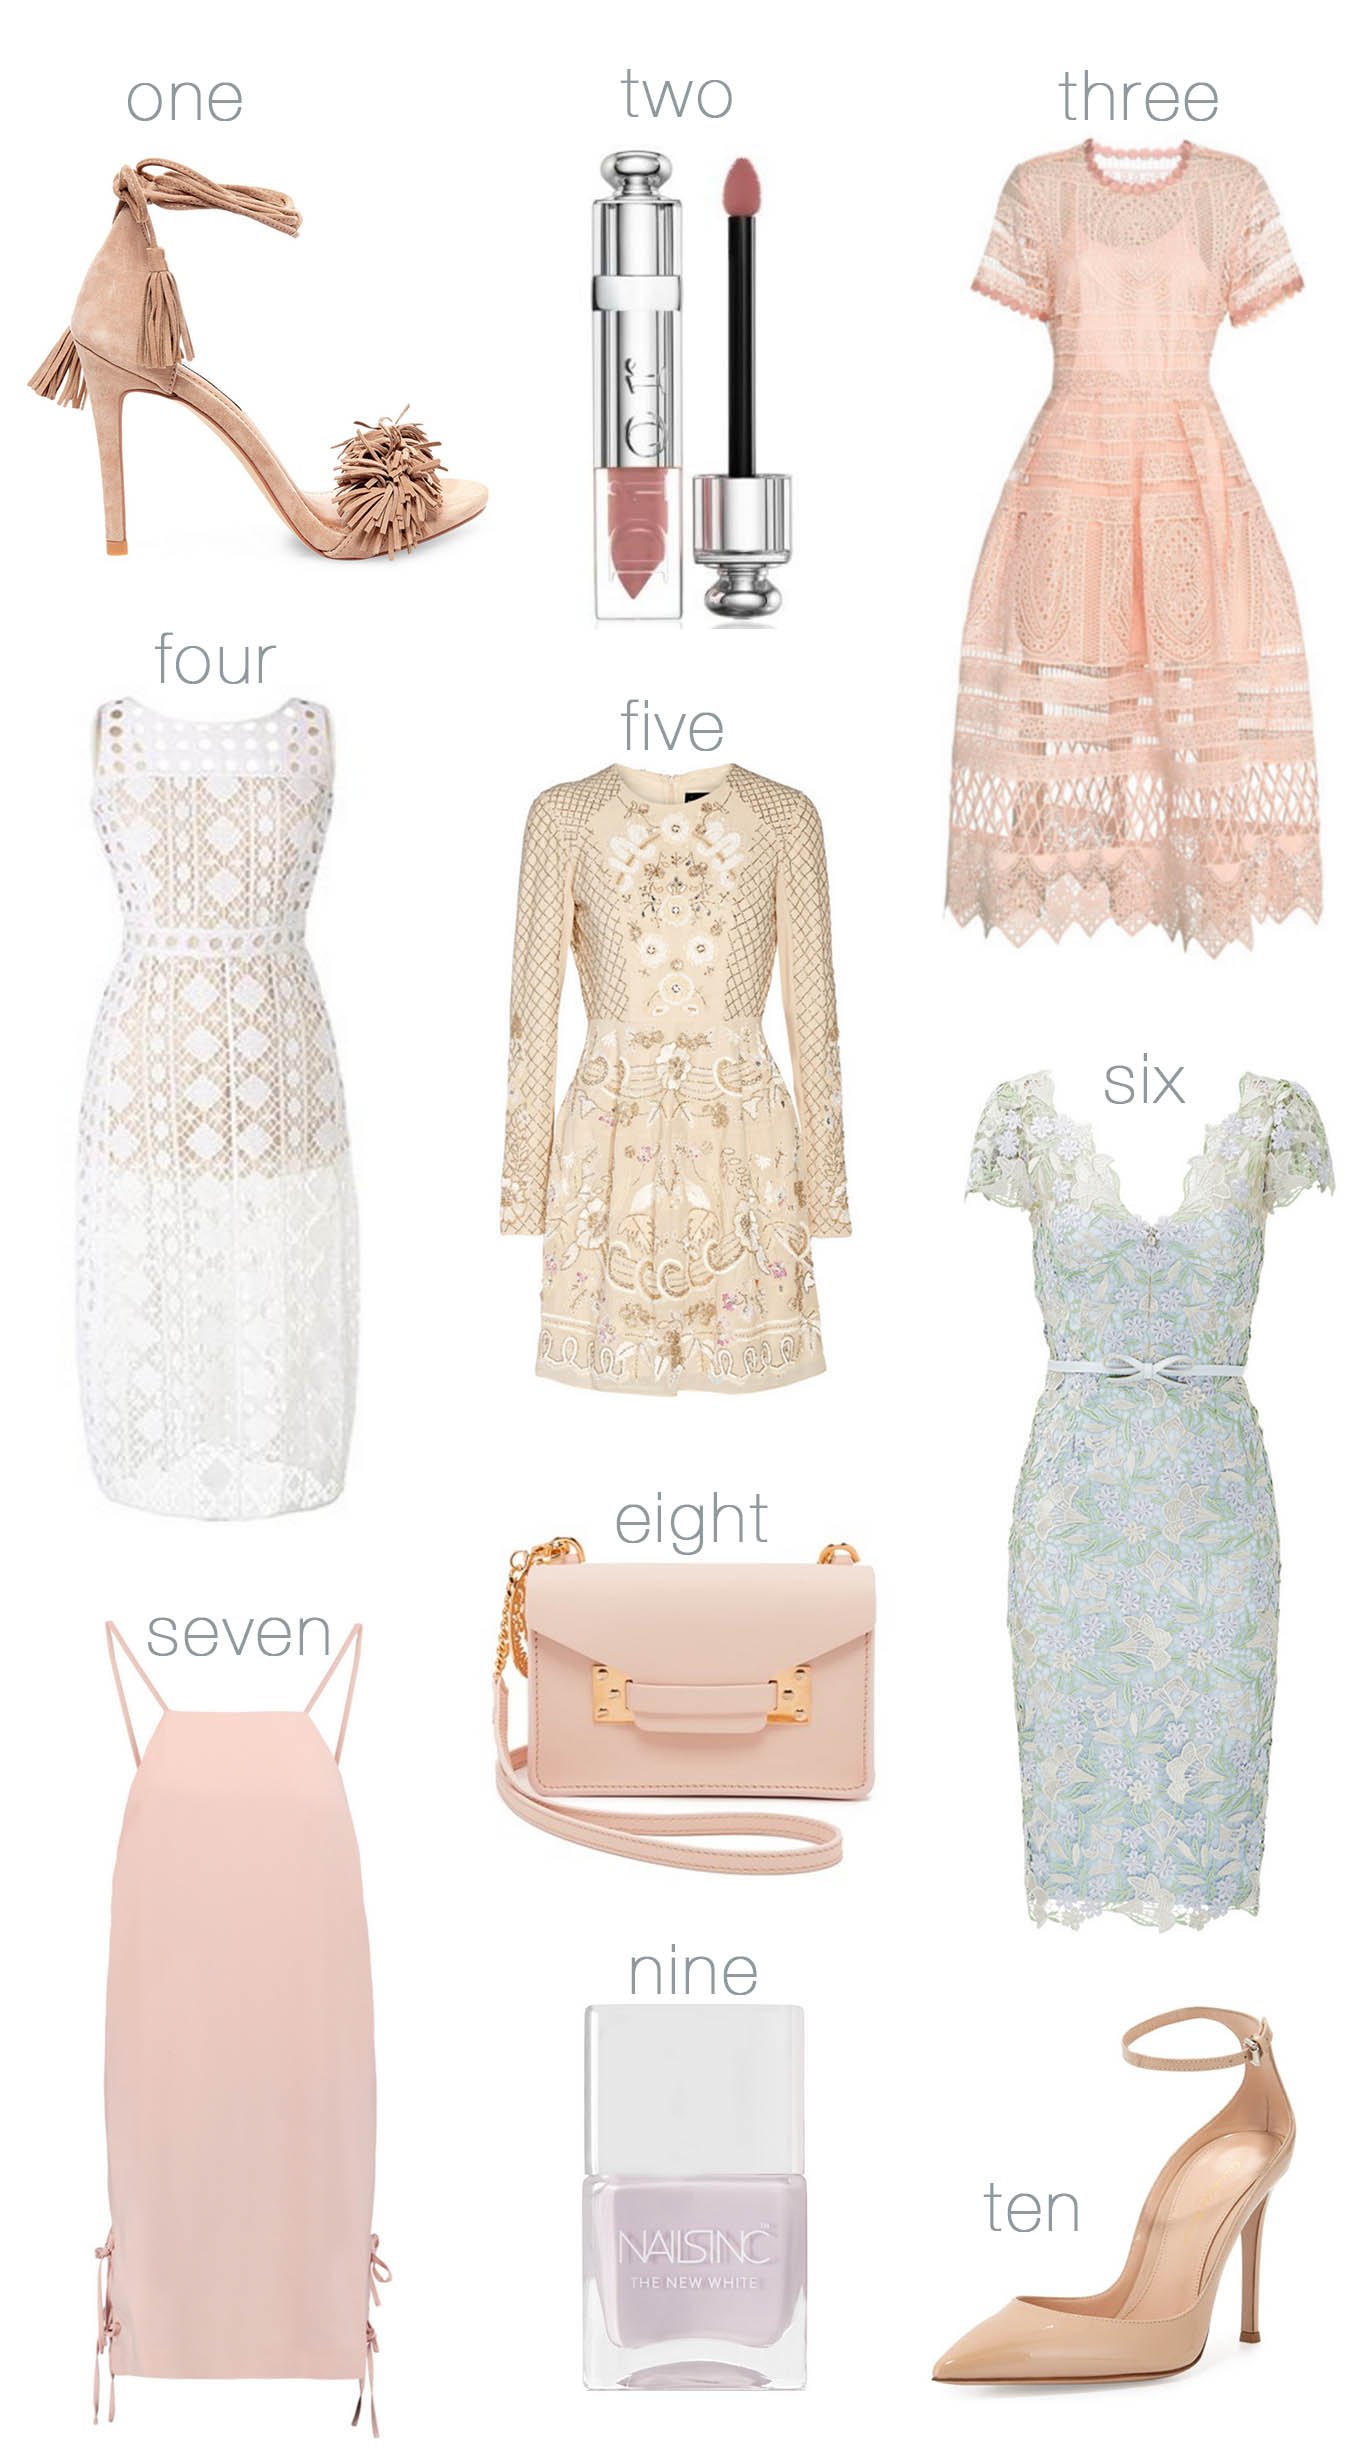 Easterdresses